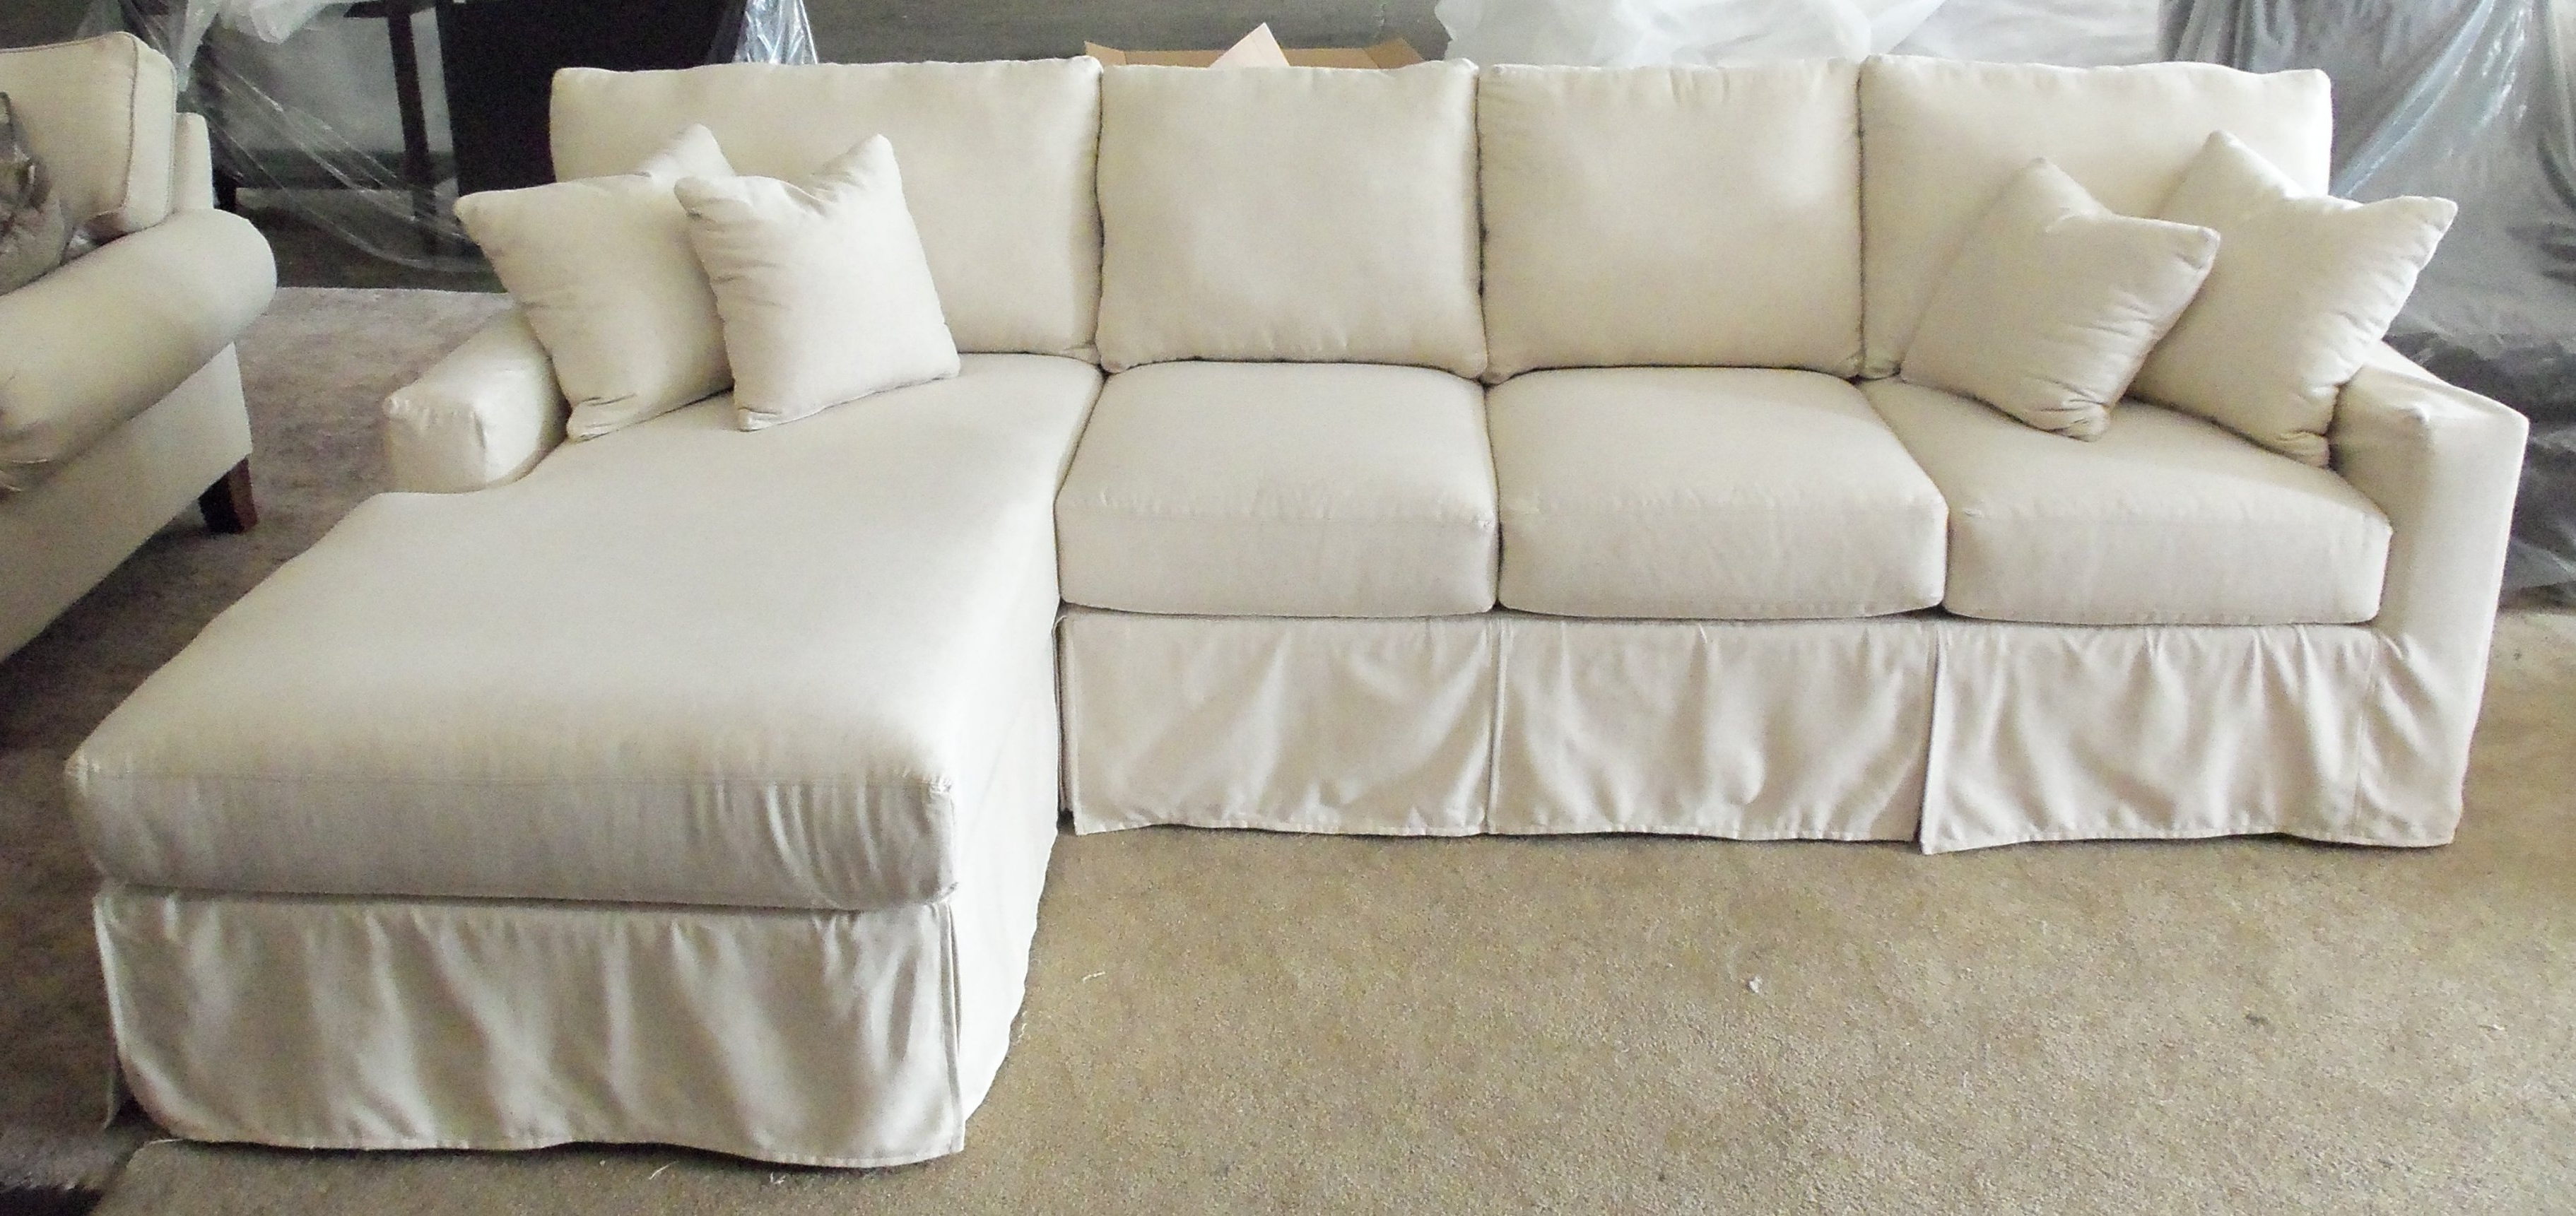 Well Known Sectional Sofa With Microfiber Chaise Together Loveseat In Throughout Chaise Slipcovers (View 13 of 15)